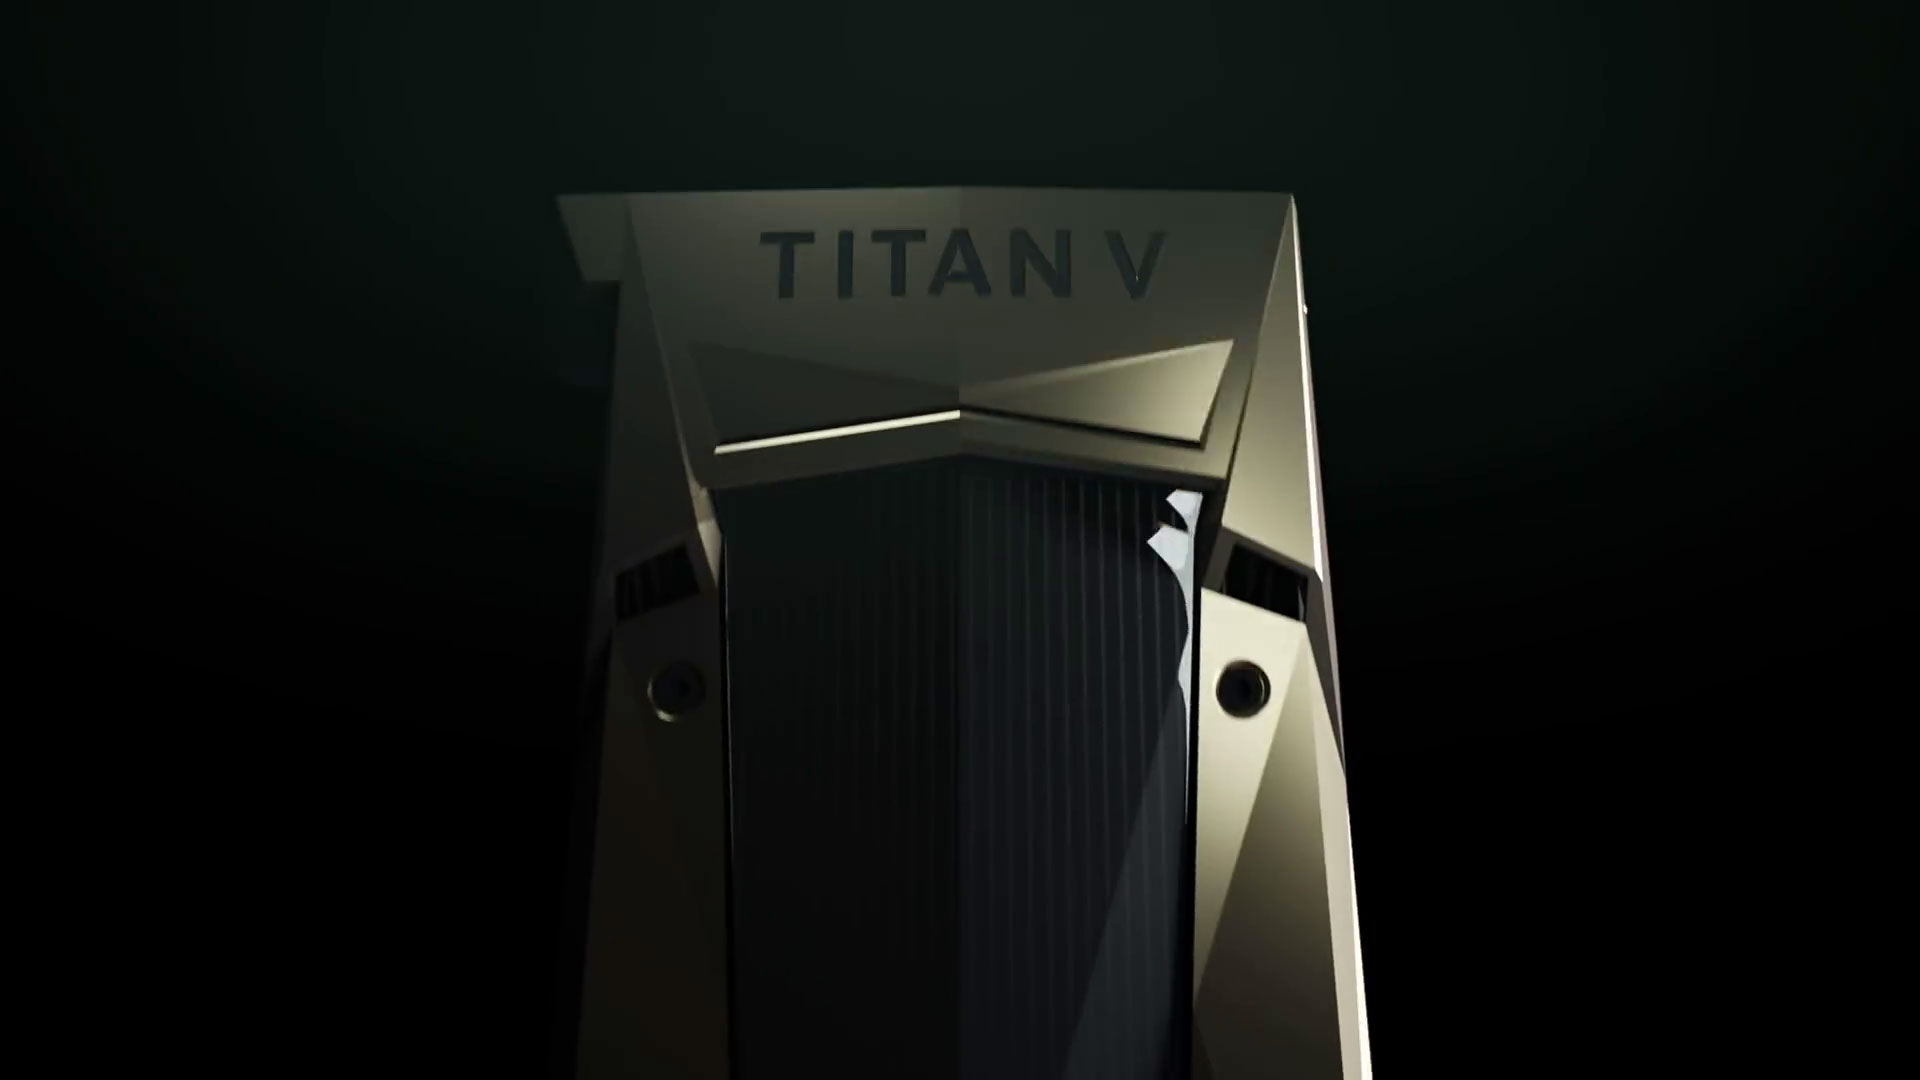 Here are early Titan V benchmarks